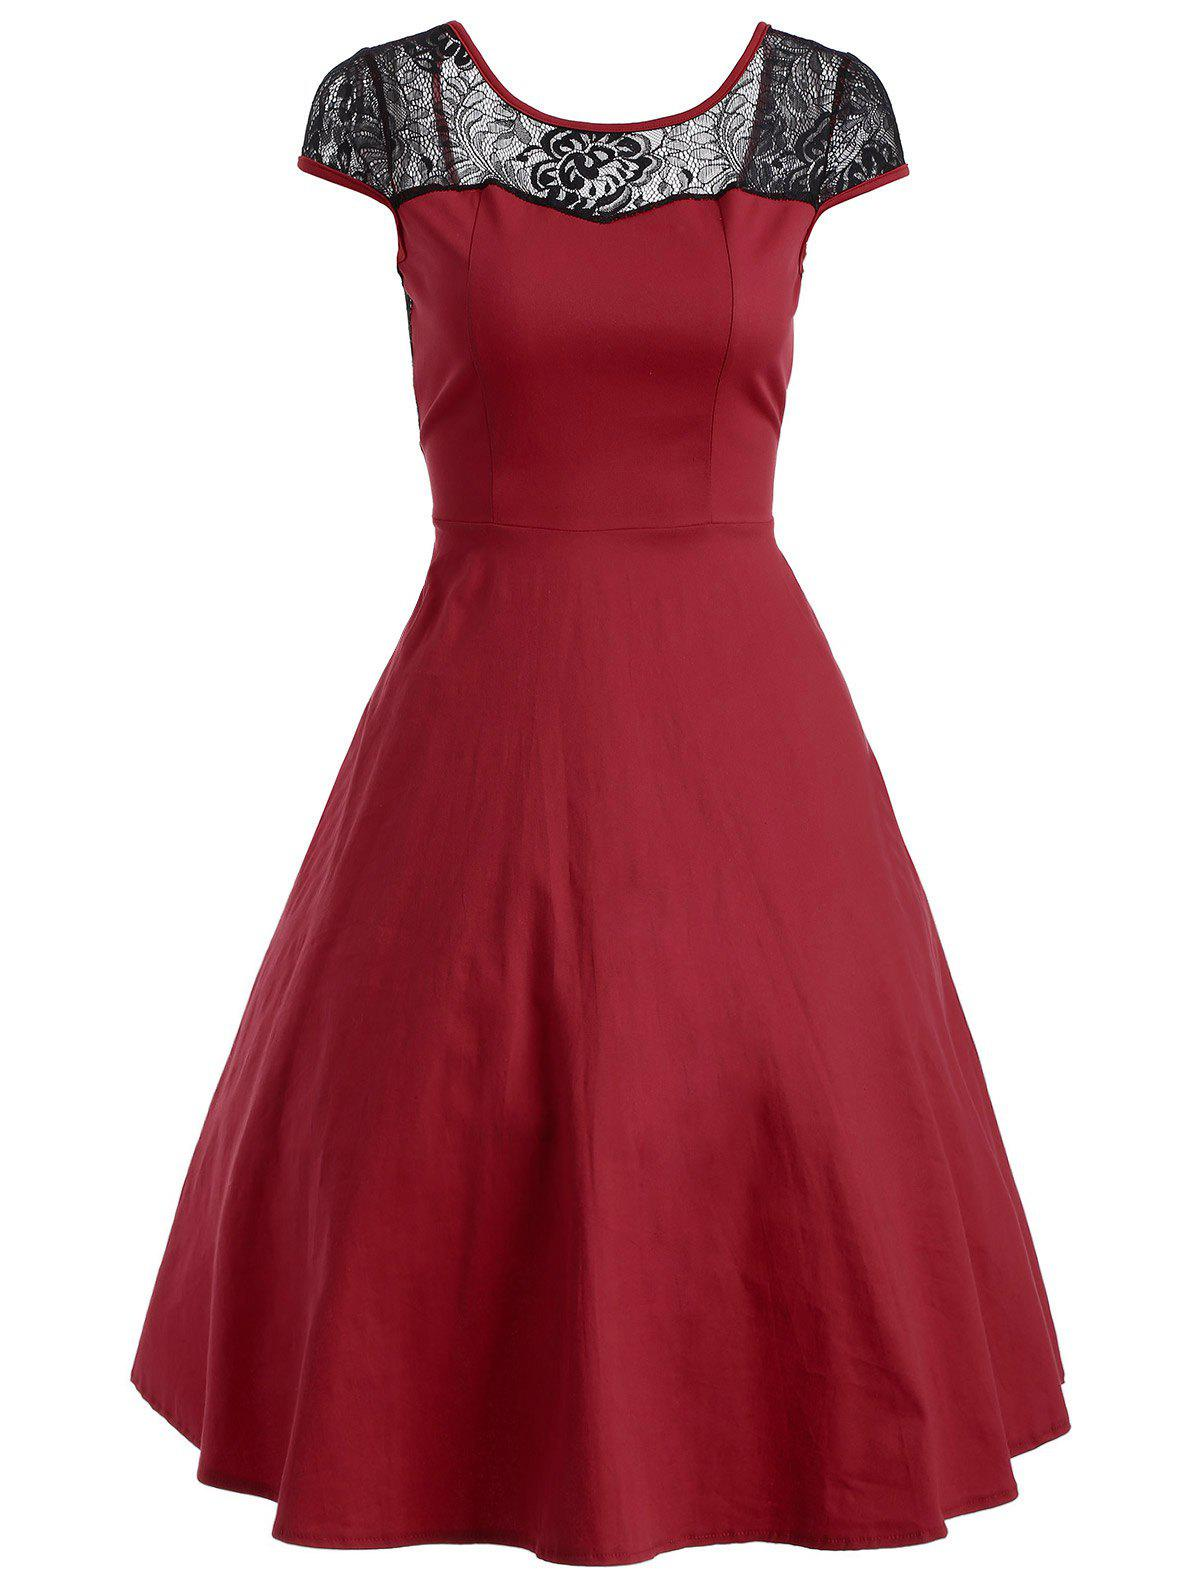 Floral Lace Panel Swing Dress - RED M